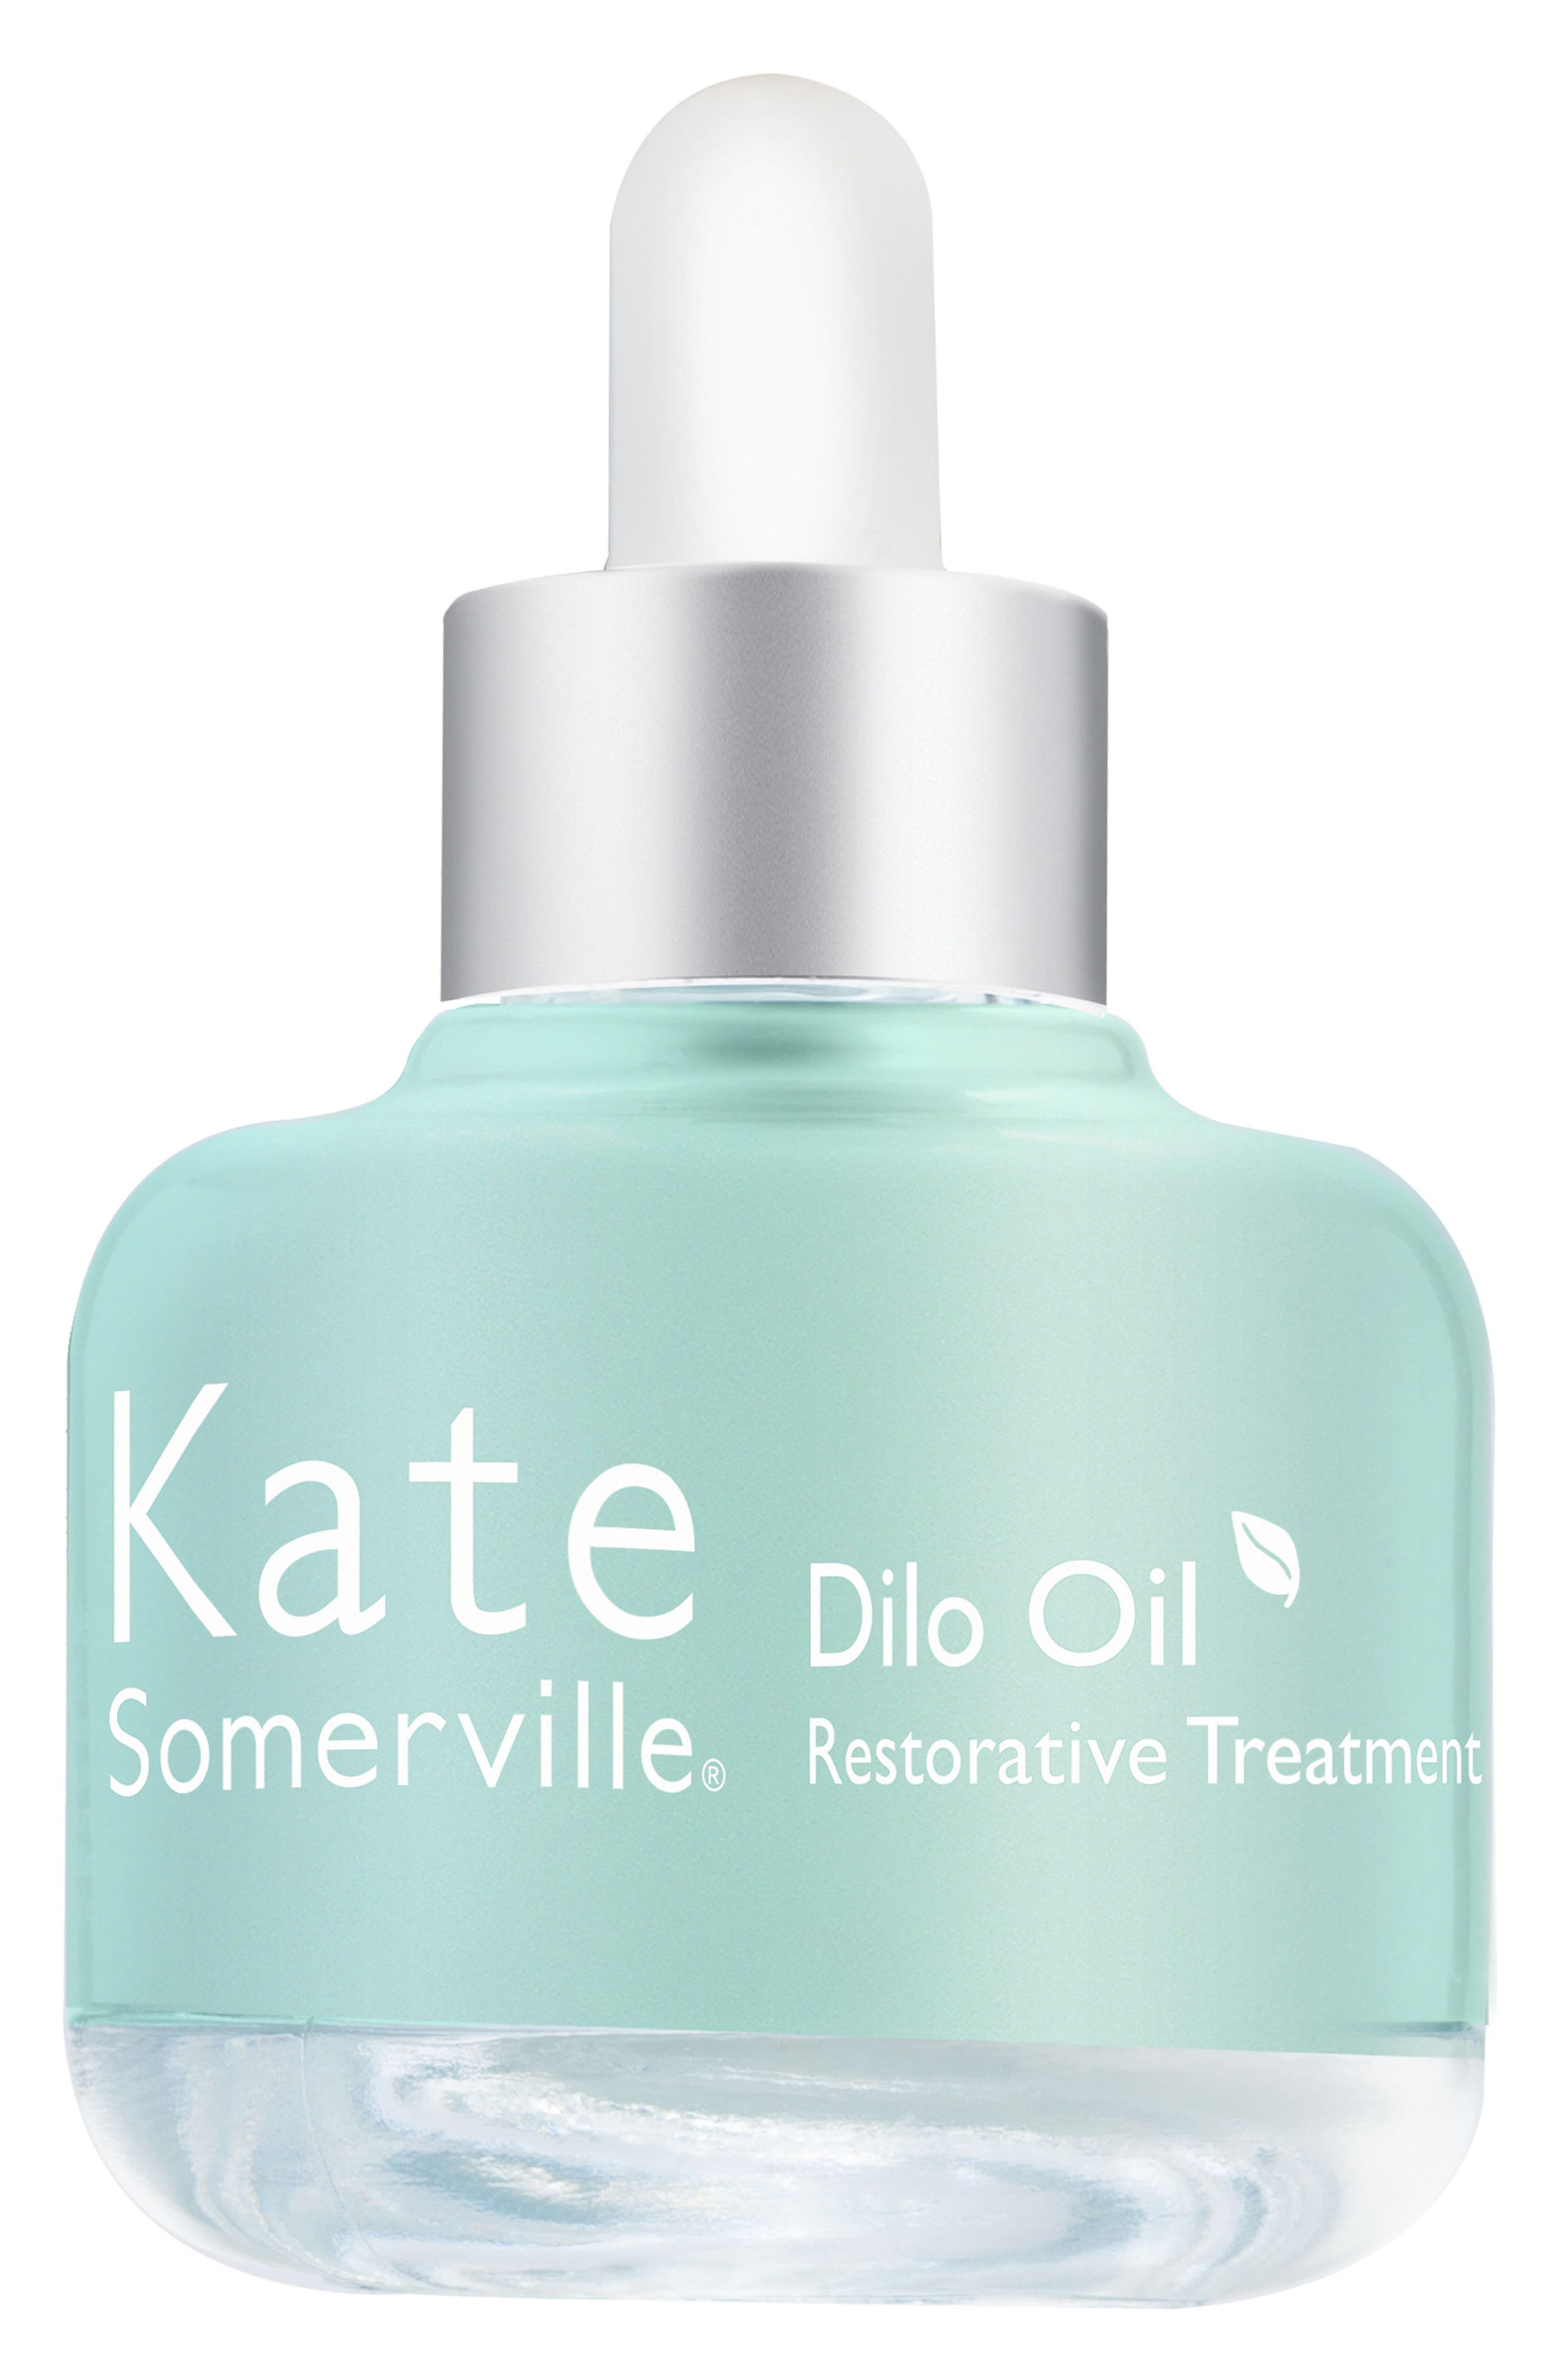 Kate Somerville® Dilo Oil Restorative Treatment